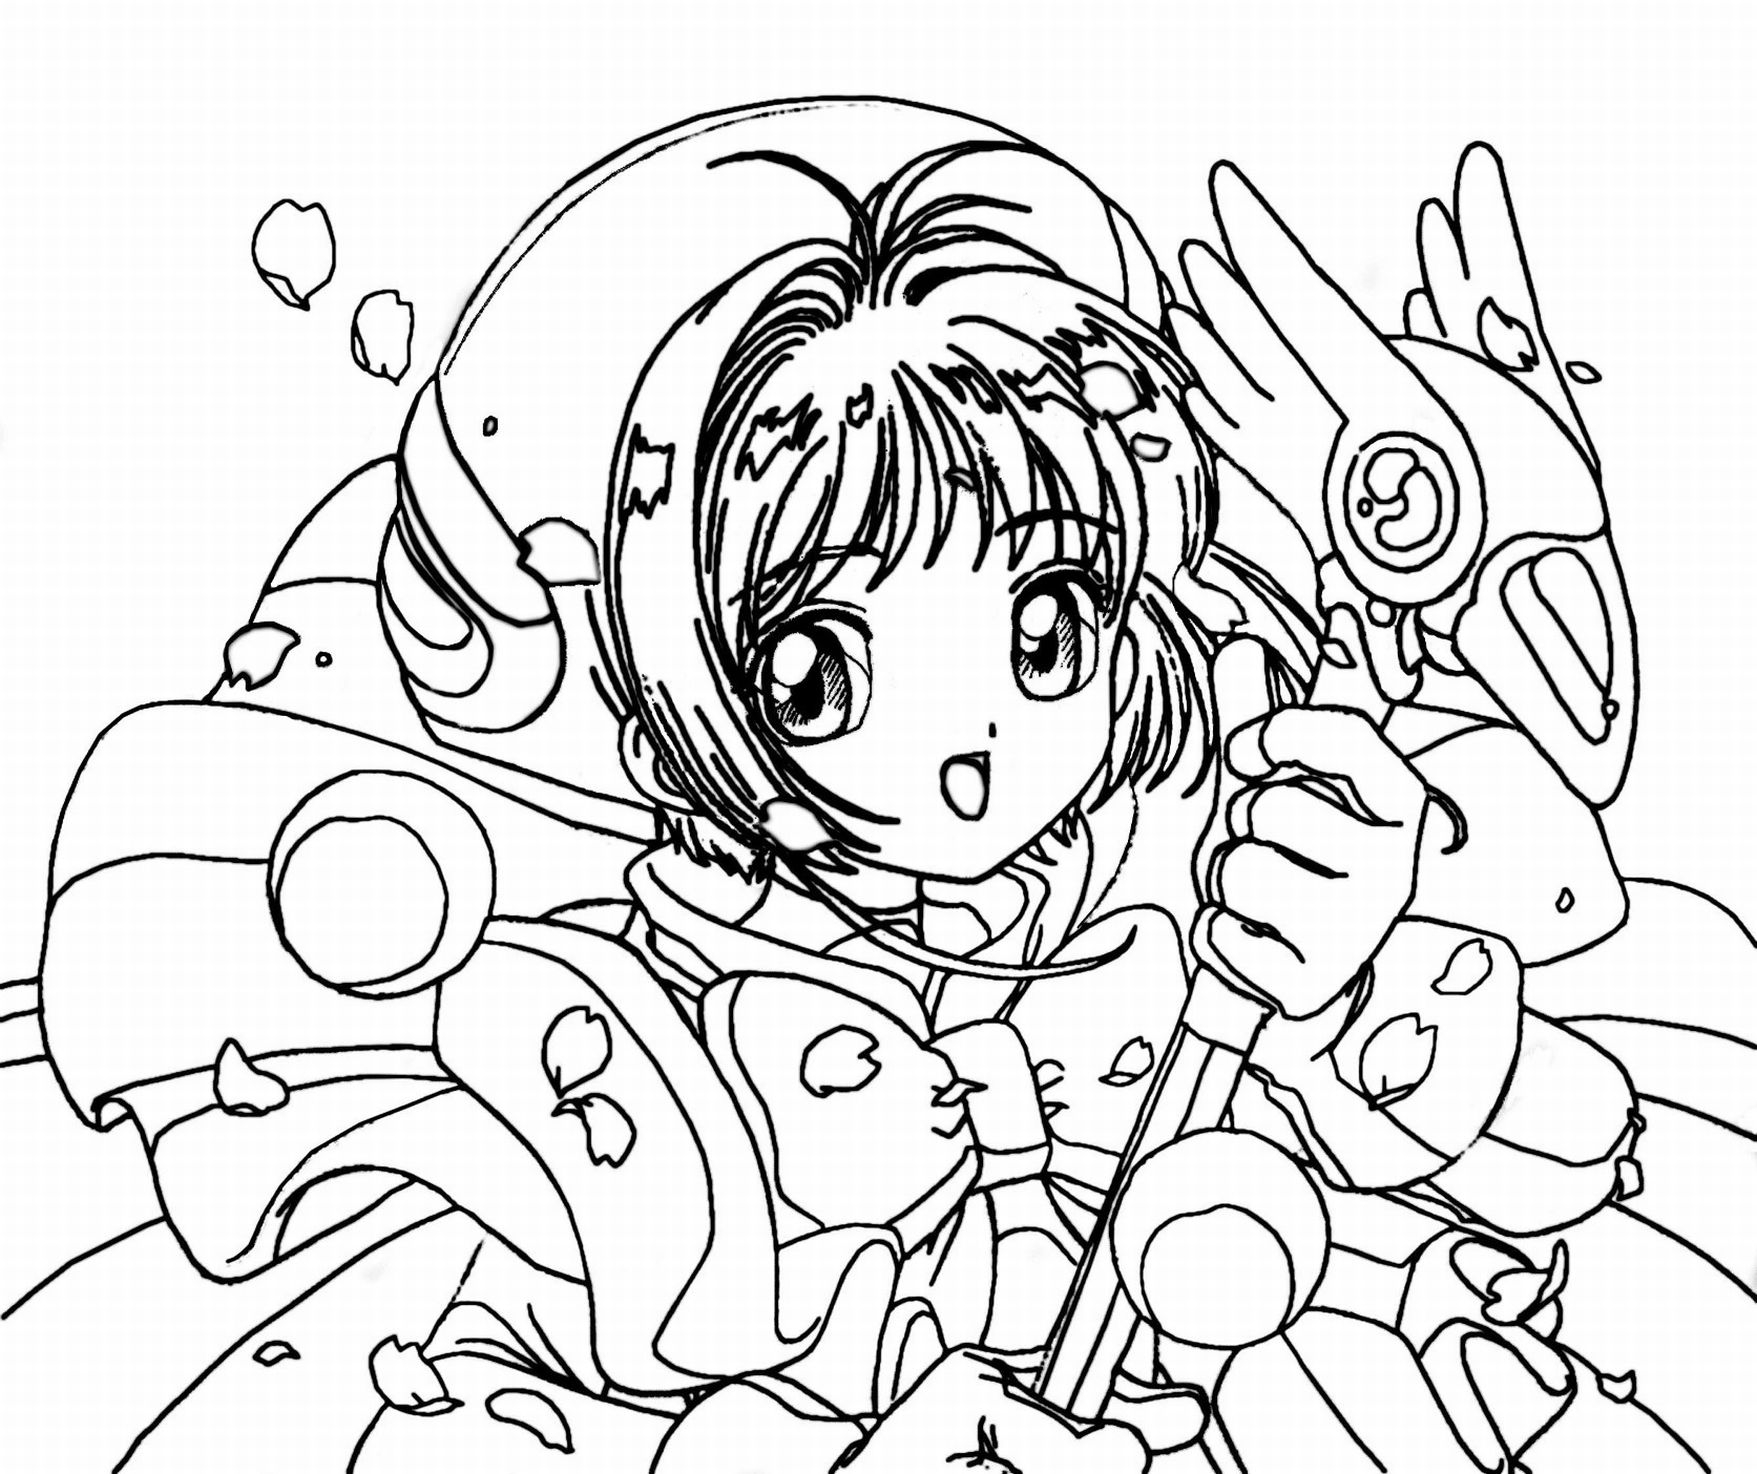 manga coloring pages - anime coloring pages for adults